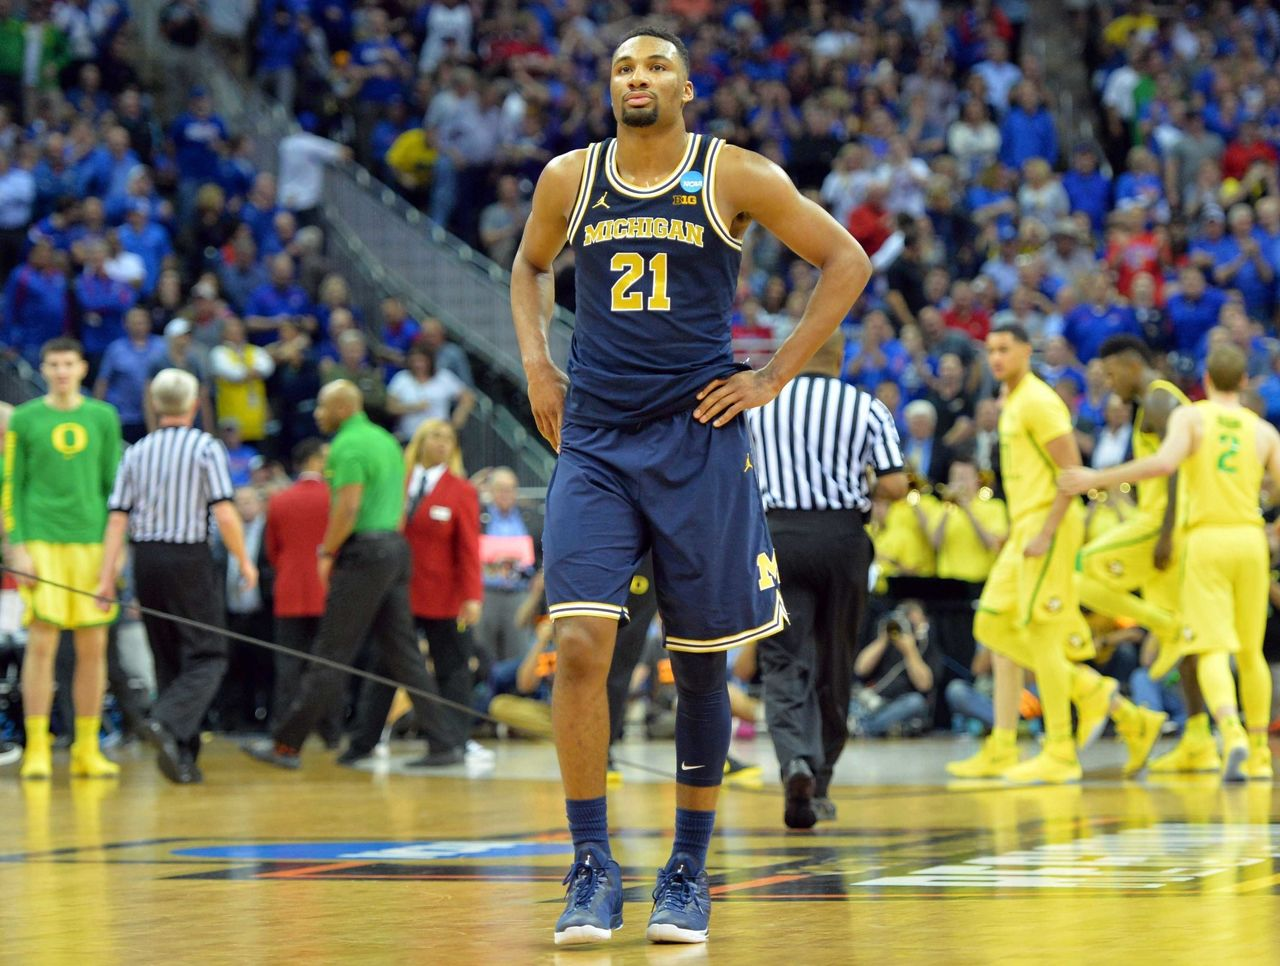 Cropped 2017 03 24t011006z 324106035 nocid rtrmadp 3 ncaa basketball ncaa tournament midwest regional oregon vs michigan